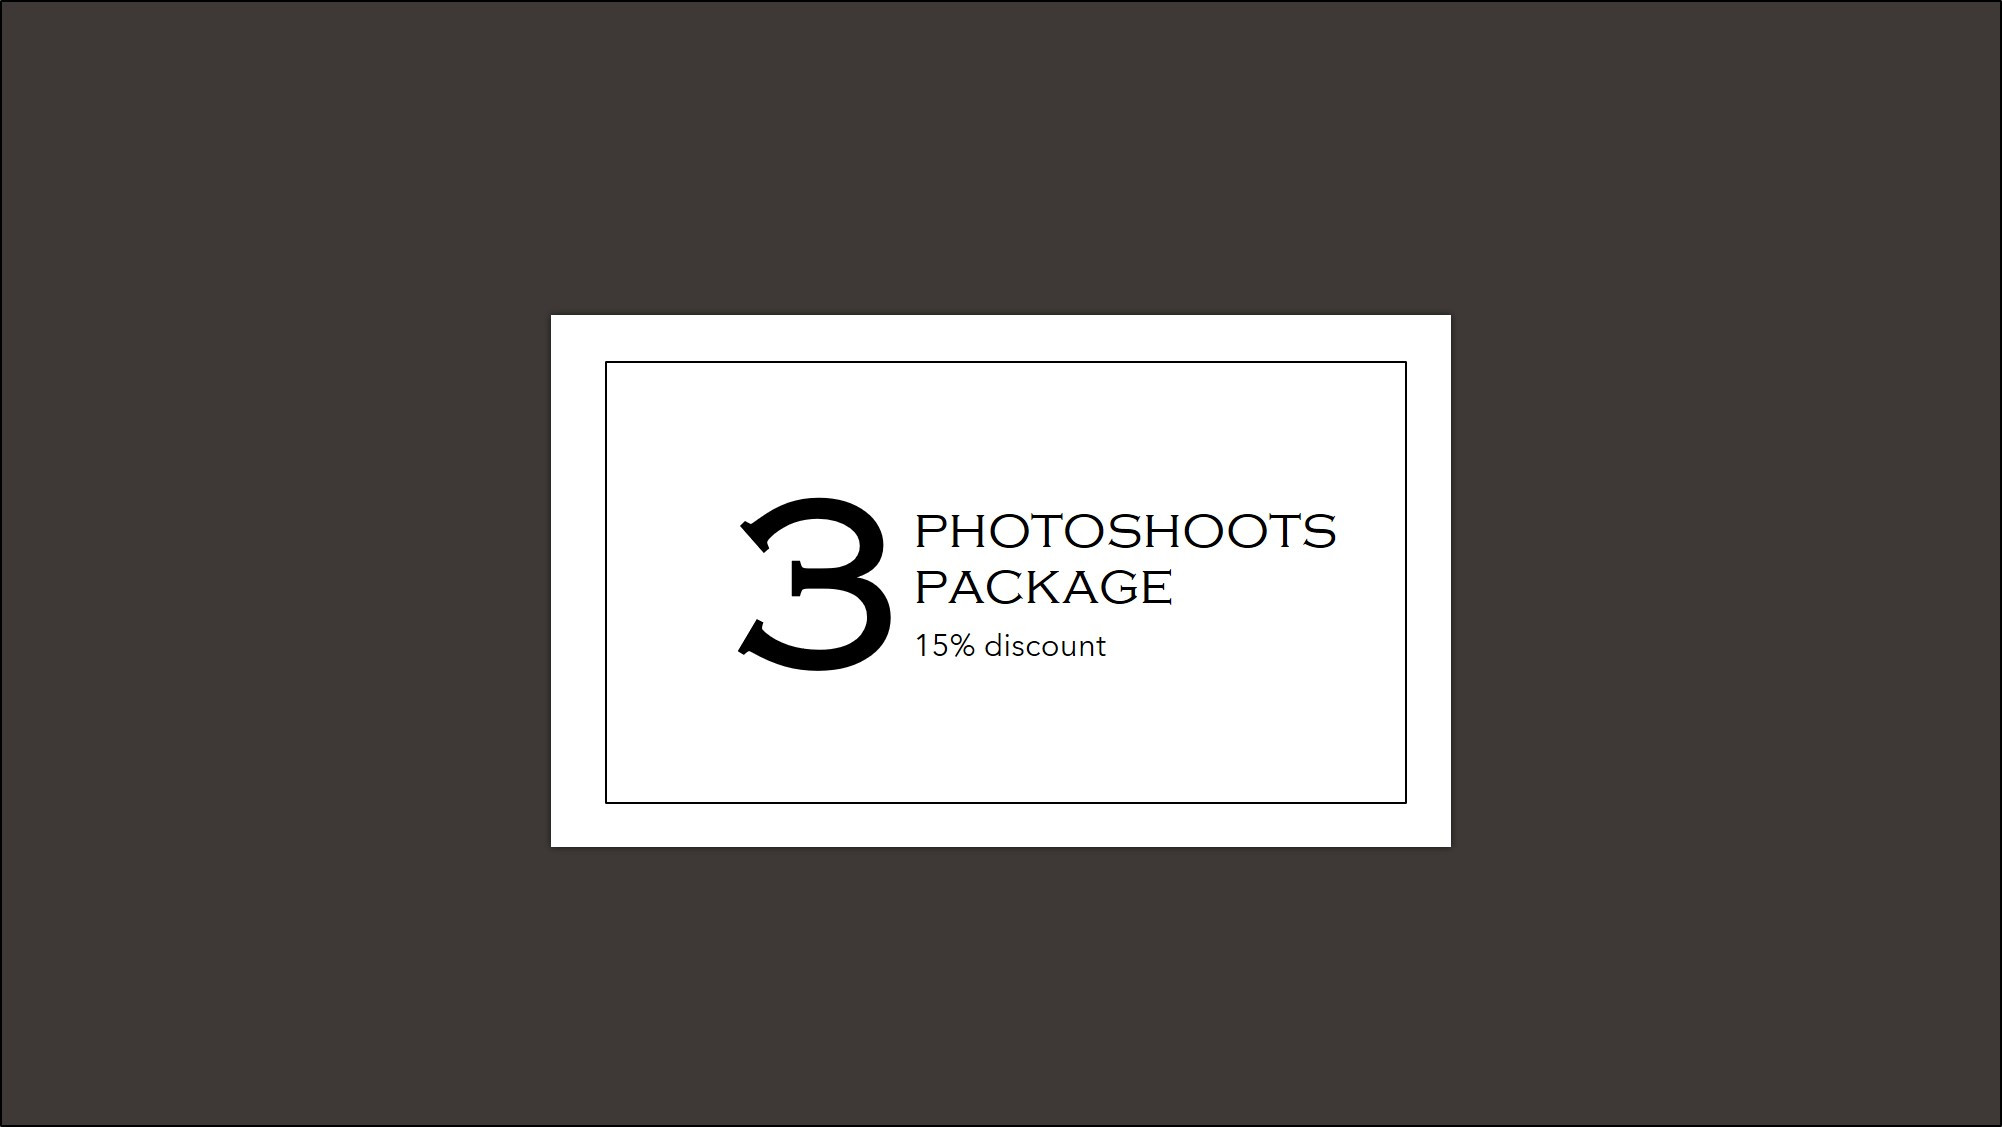 3 X 1hr-photoshoots package